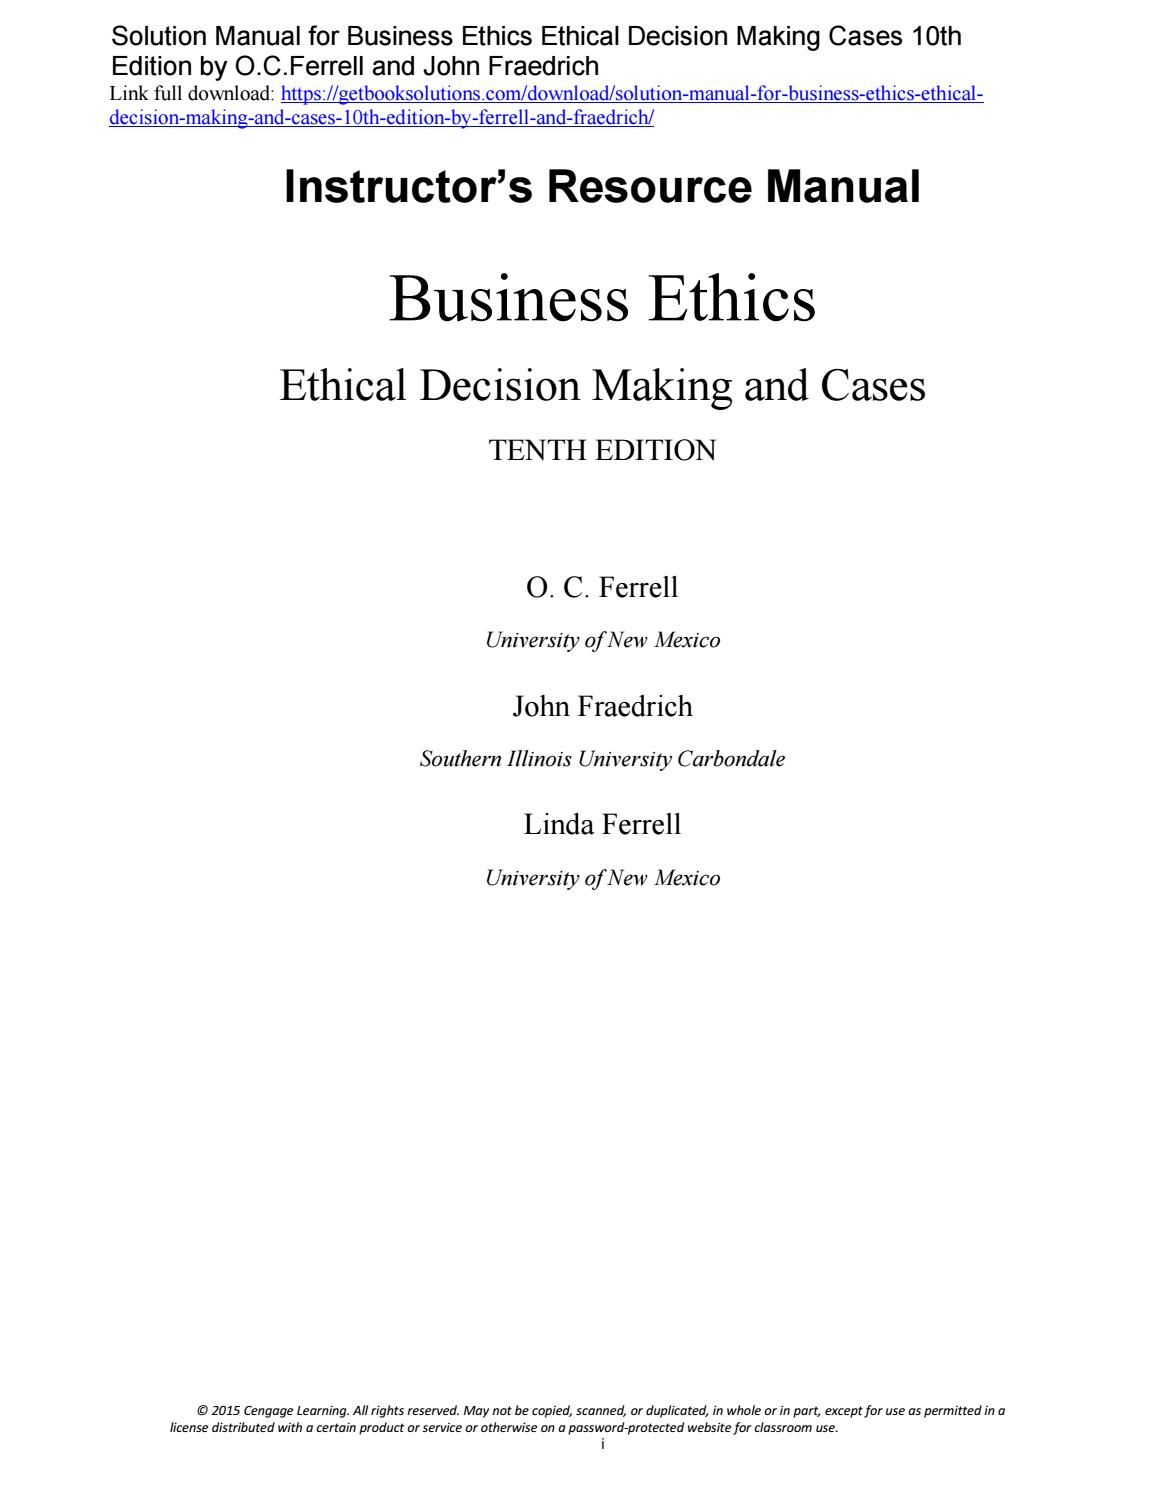 Solutions manual business ethics ethical decision making cases 10th edition  ferrell